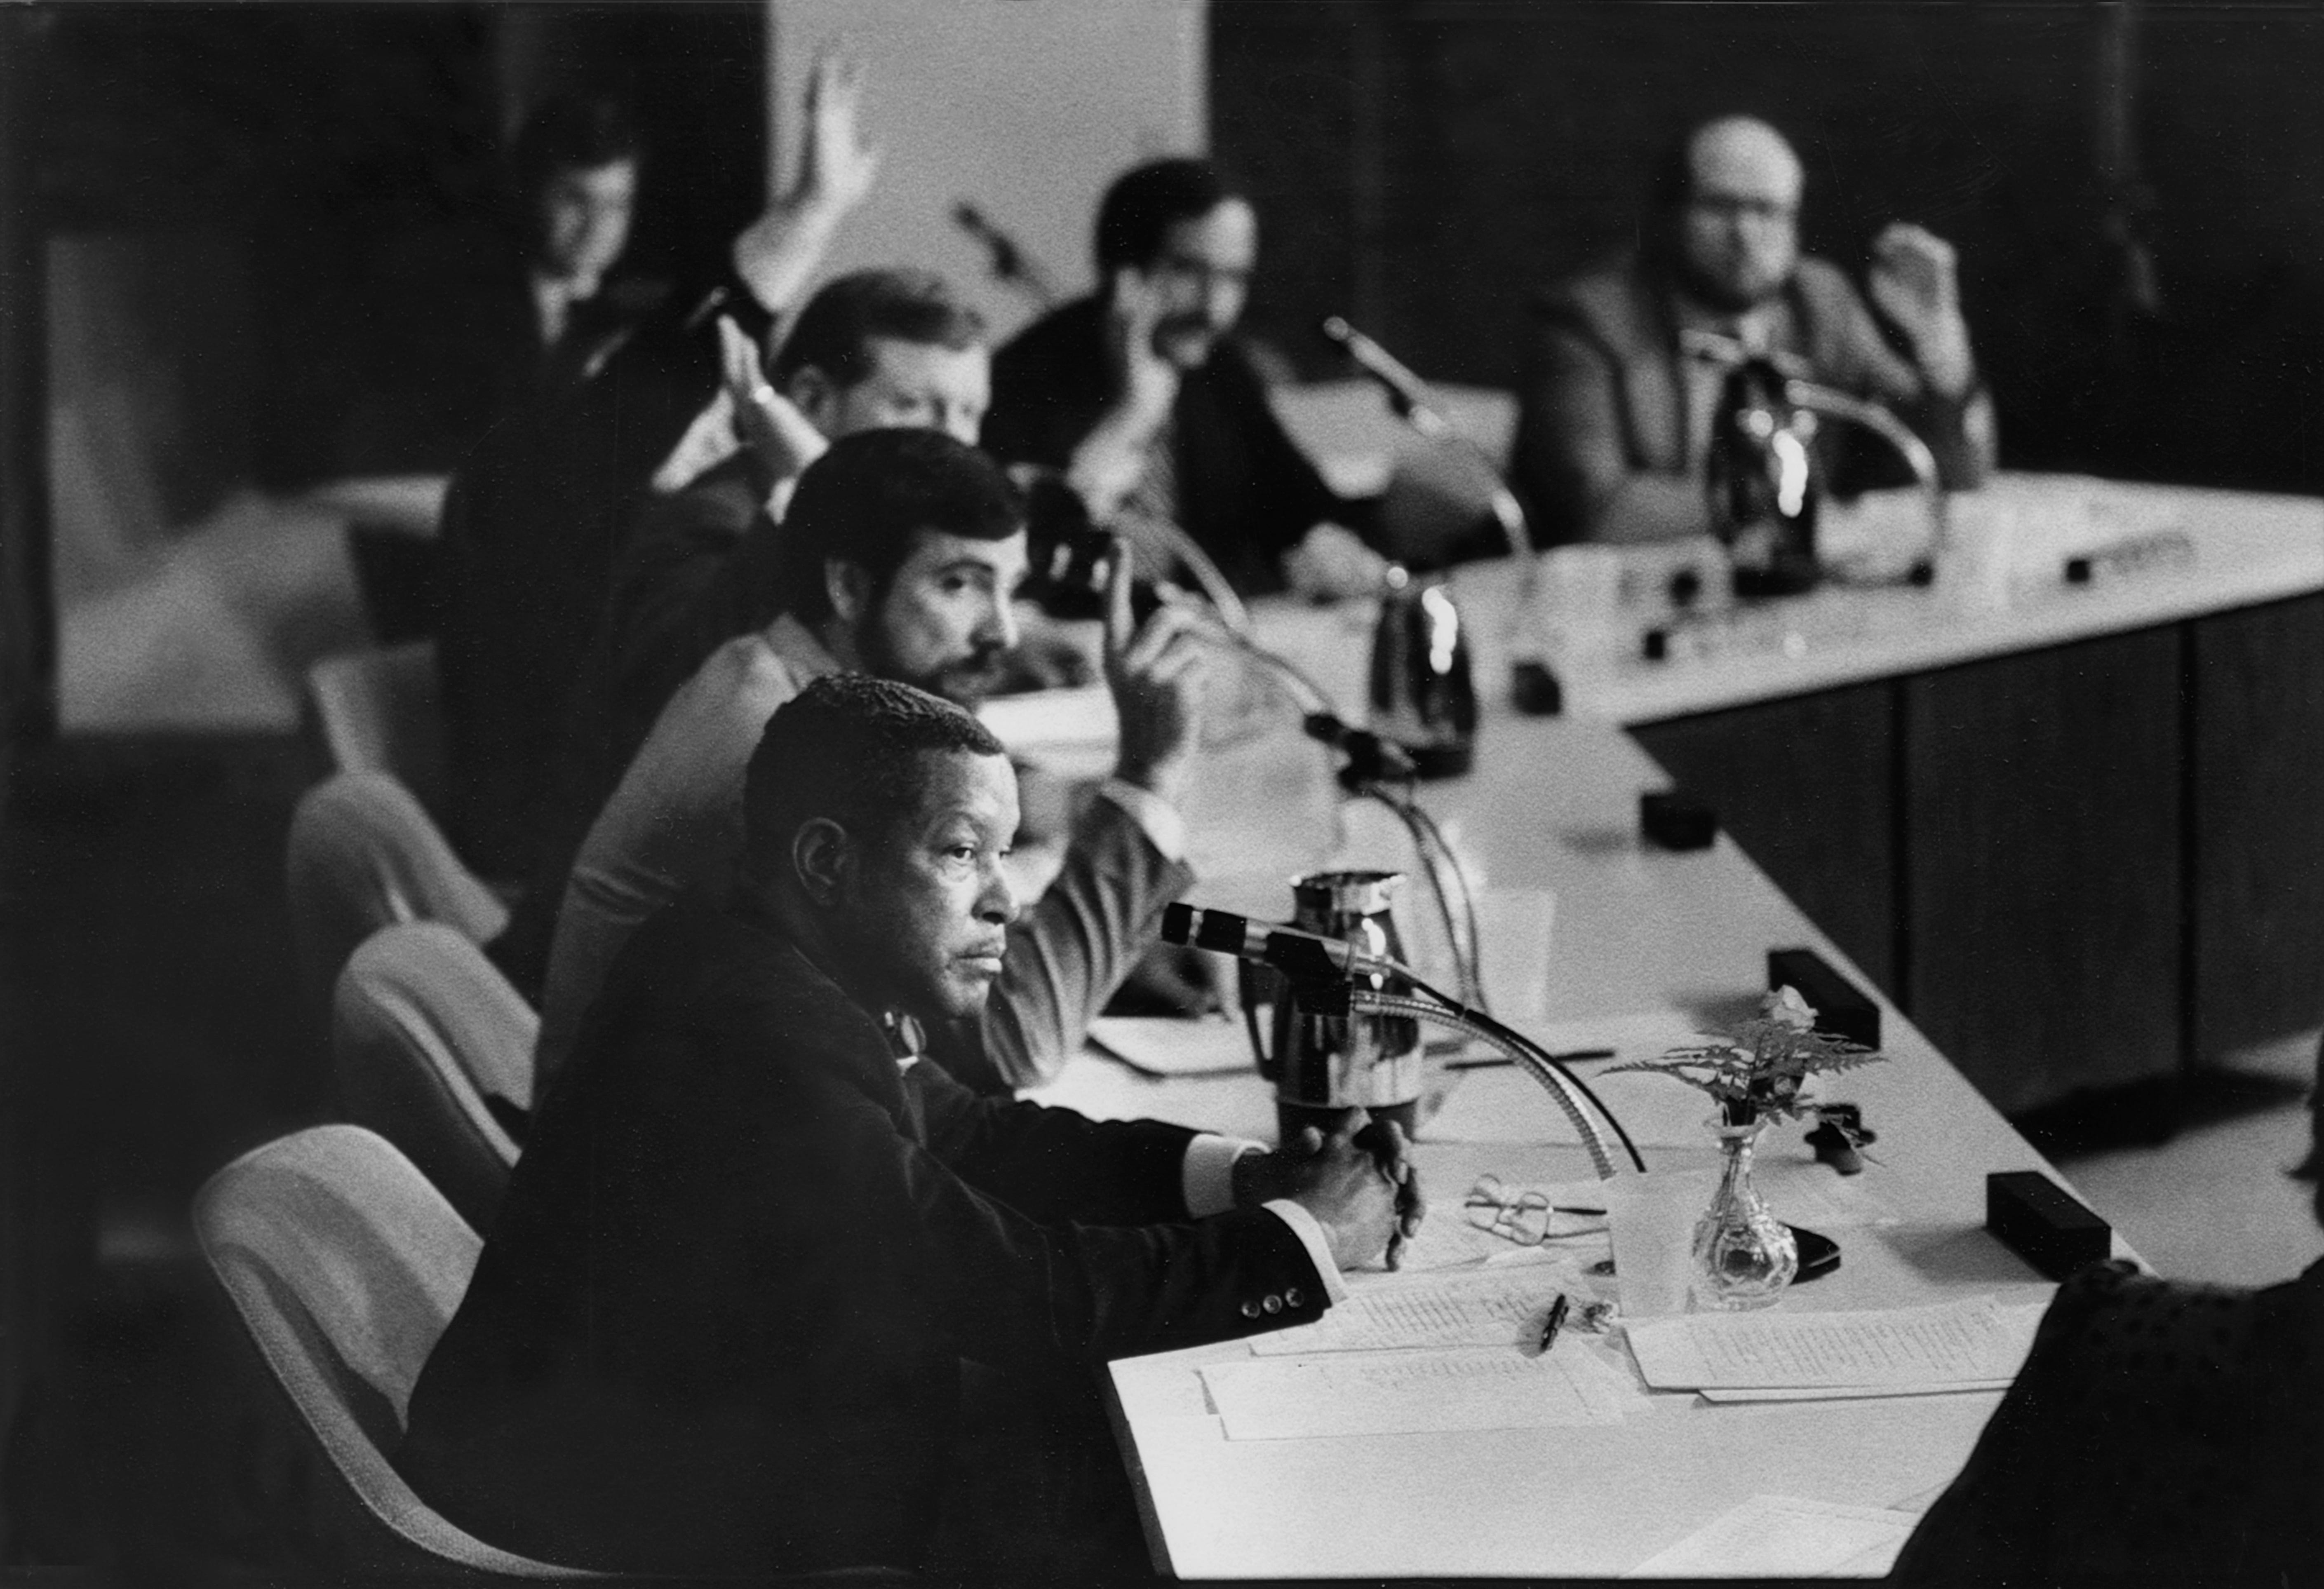 The Rev. C. Mackey Daniels, foreground, was the only Jefferson County school board member to vote against the new busing plan in 1984. Daniels wanted the board to defer its vote.